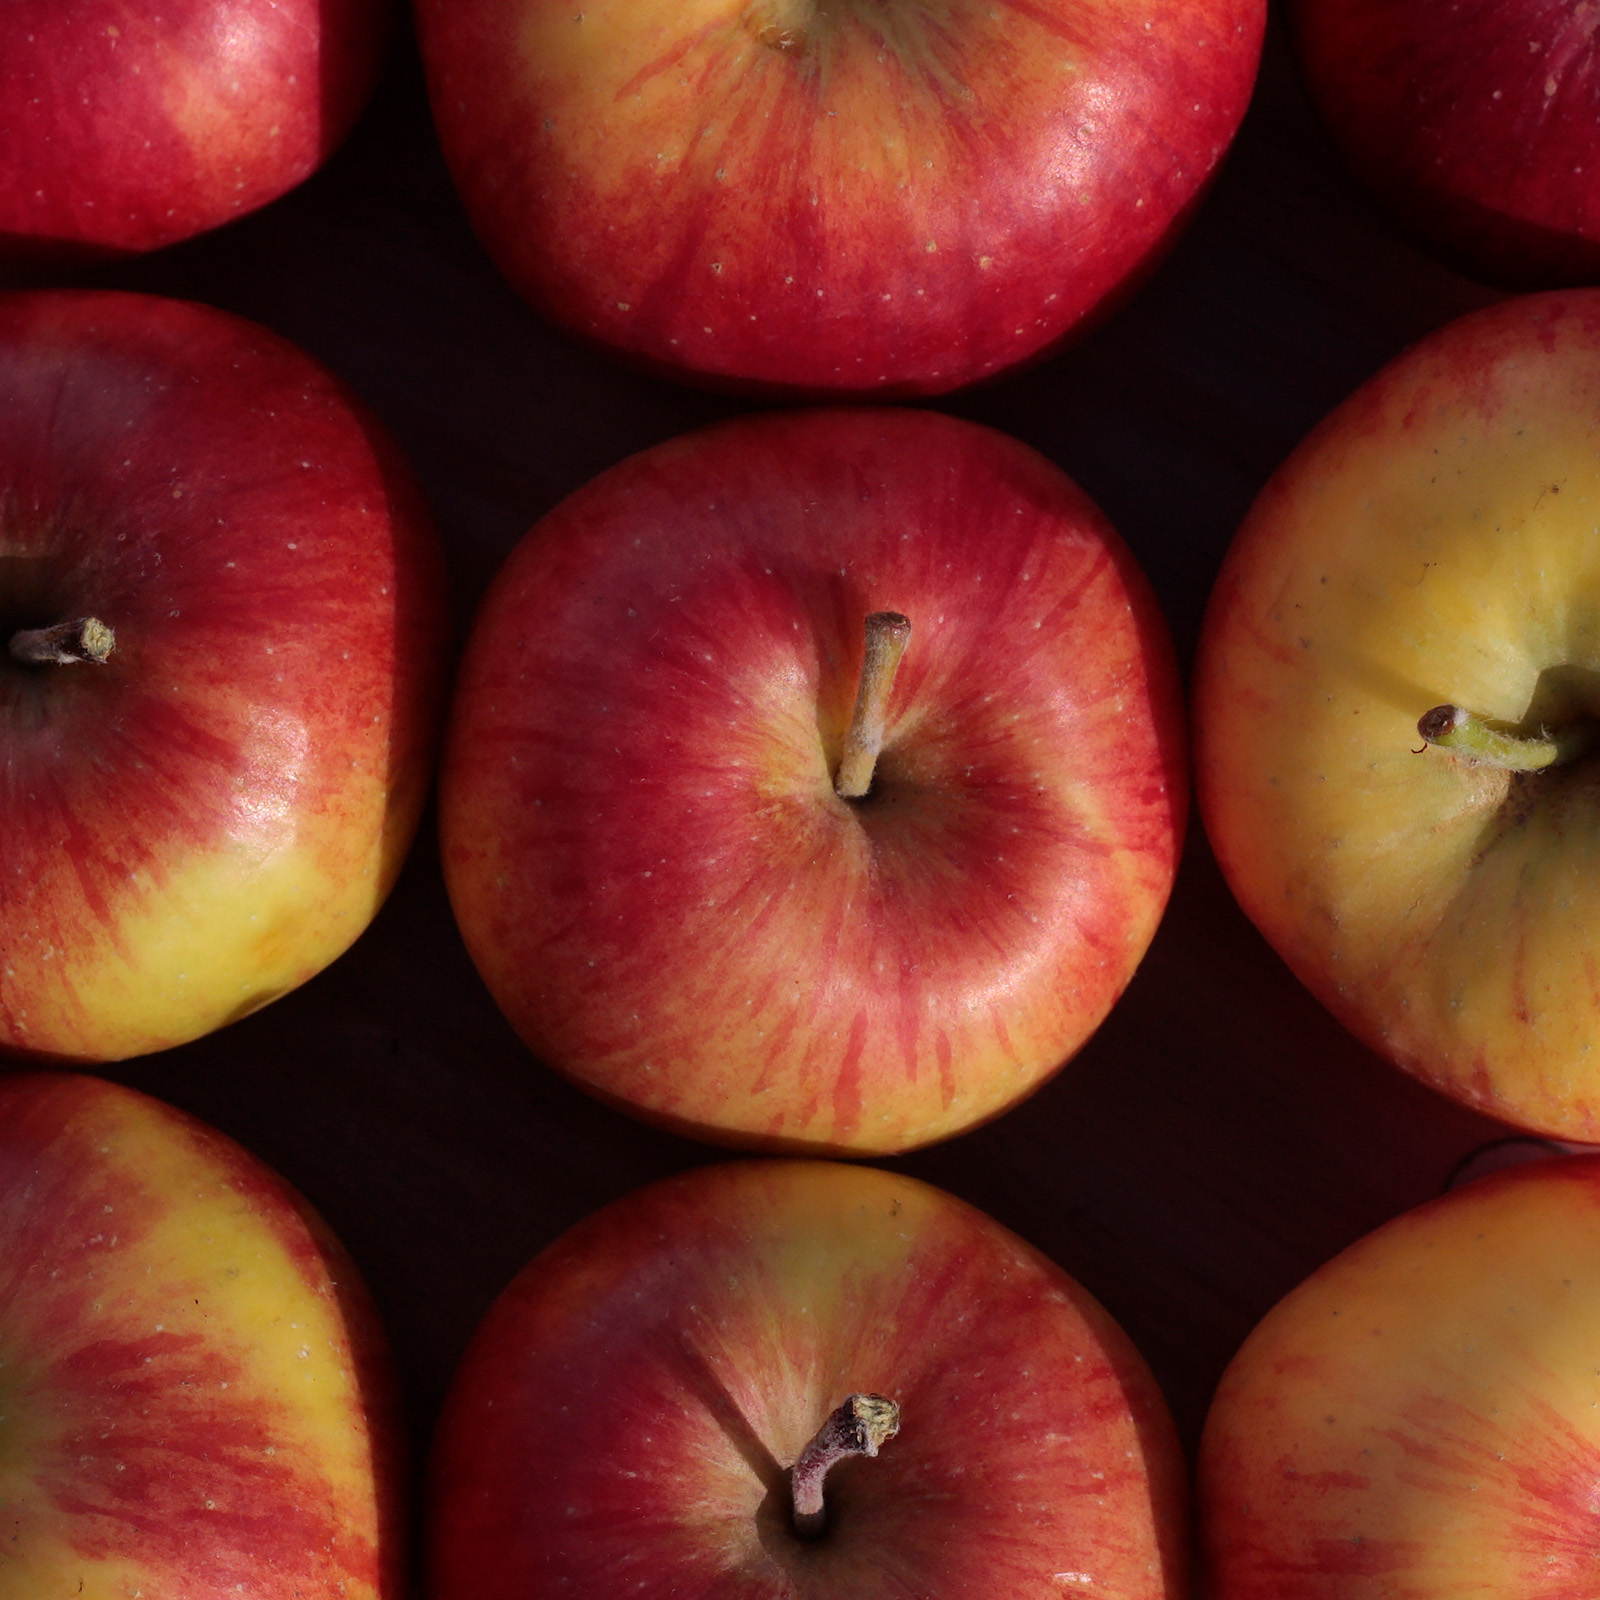 Fruits of <i>Malus</i> 'MN #1711', or honeycrisp apple